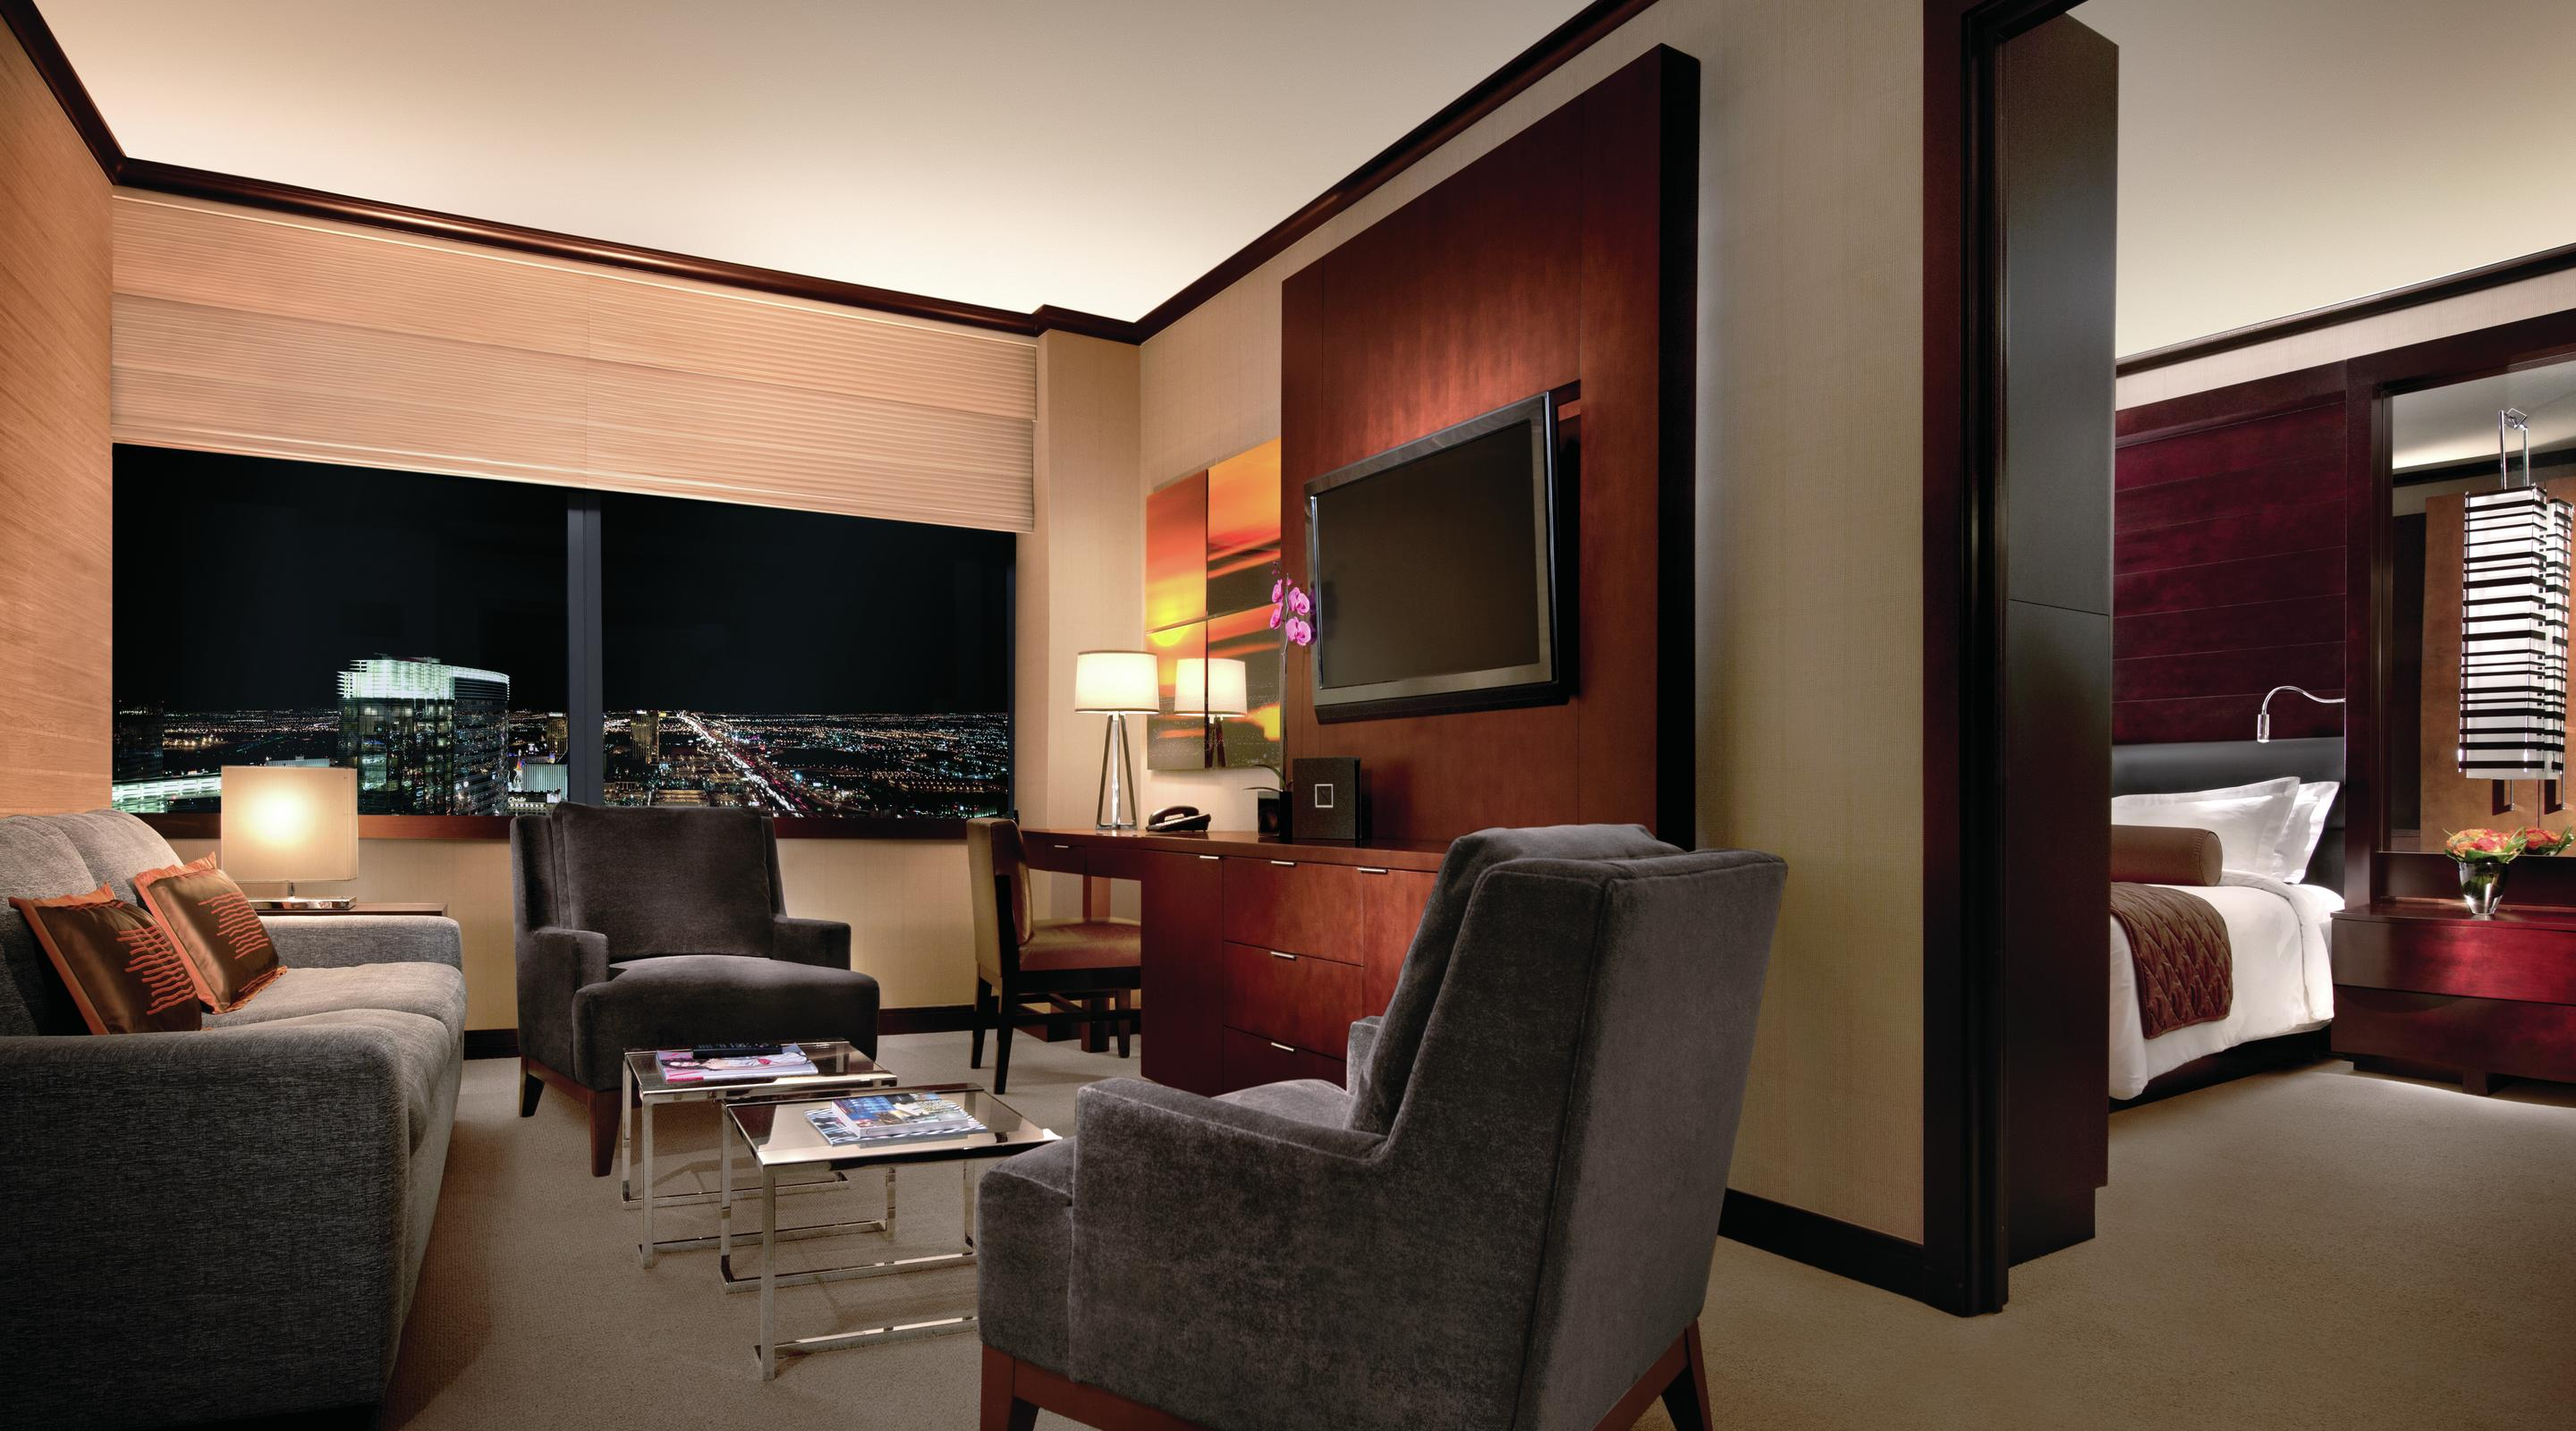 The Vdara Suites offers 811 square feet of space that are divided between the bedroom, spa-like bathroom, living room and kitchen complete with full-size fridge and cook top.